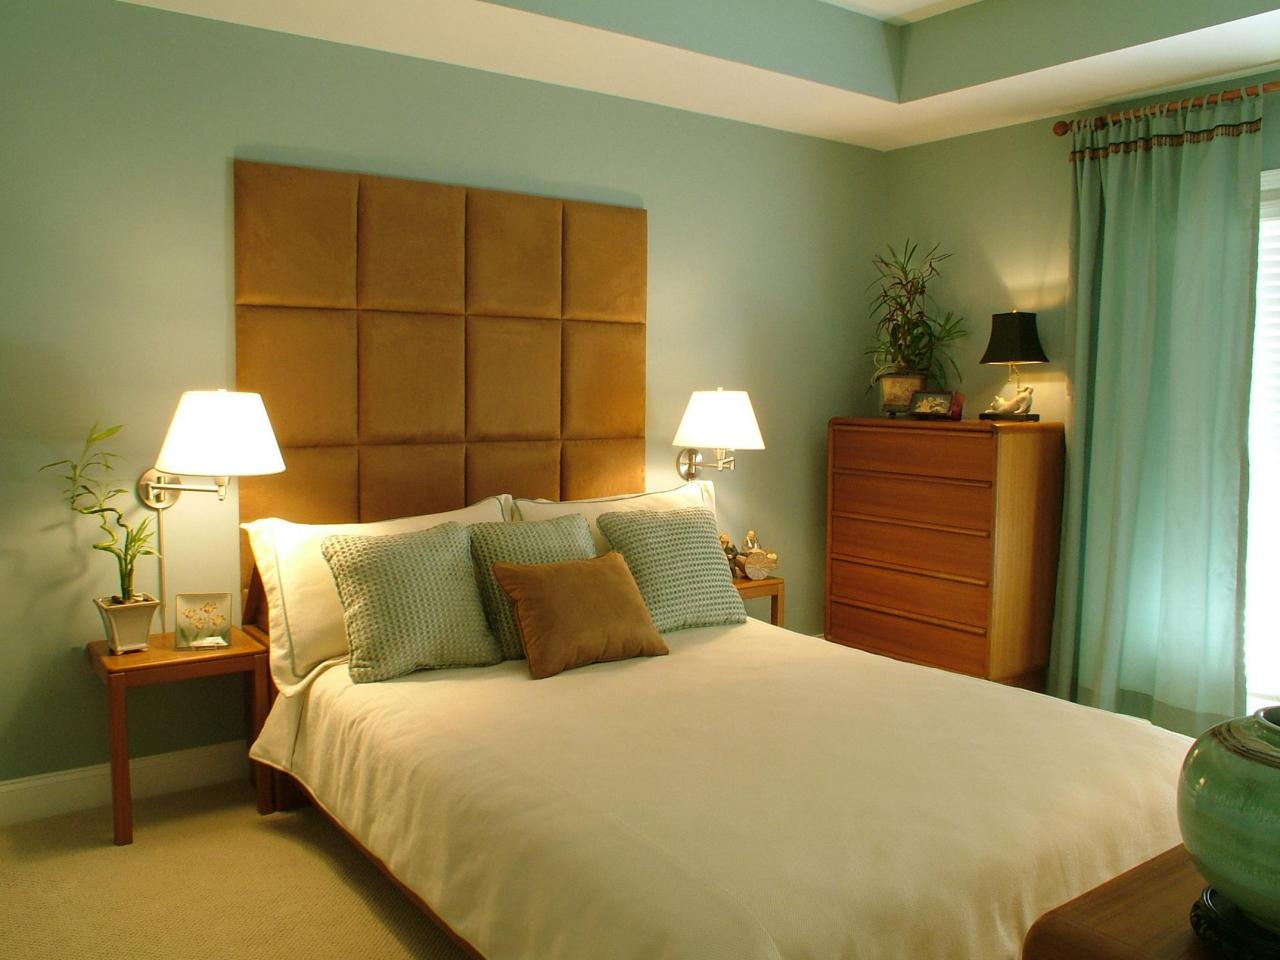 Modern Bedroom Colors Design modern bedroom colors: pictures, options & ideas | hgtv